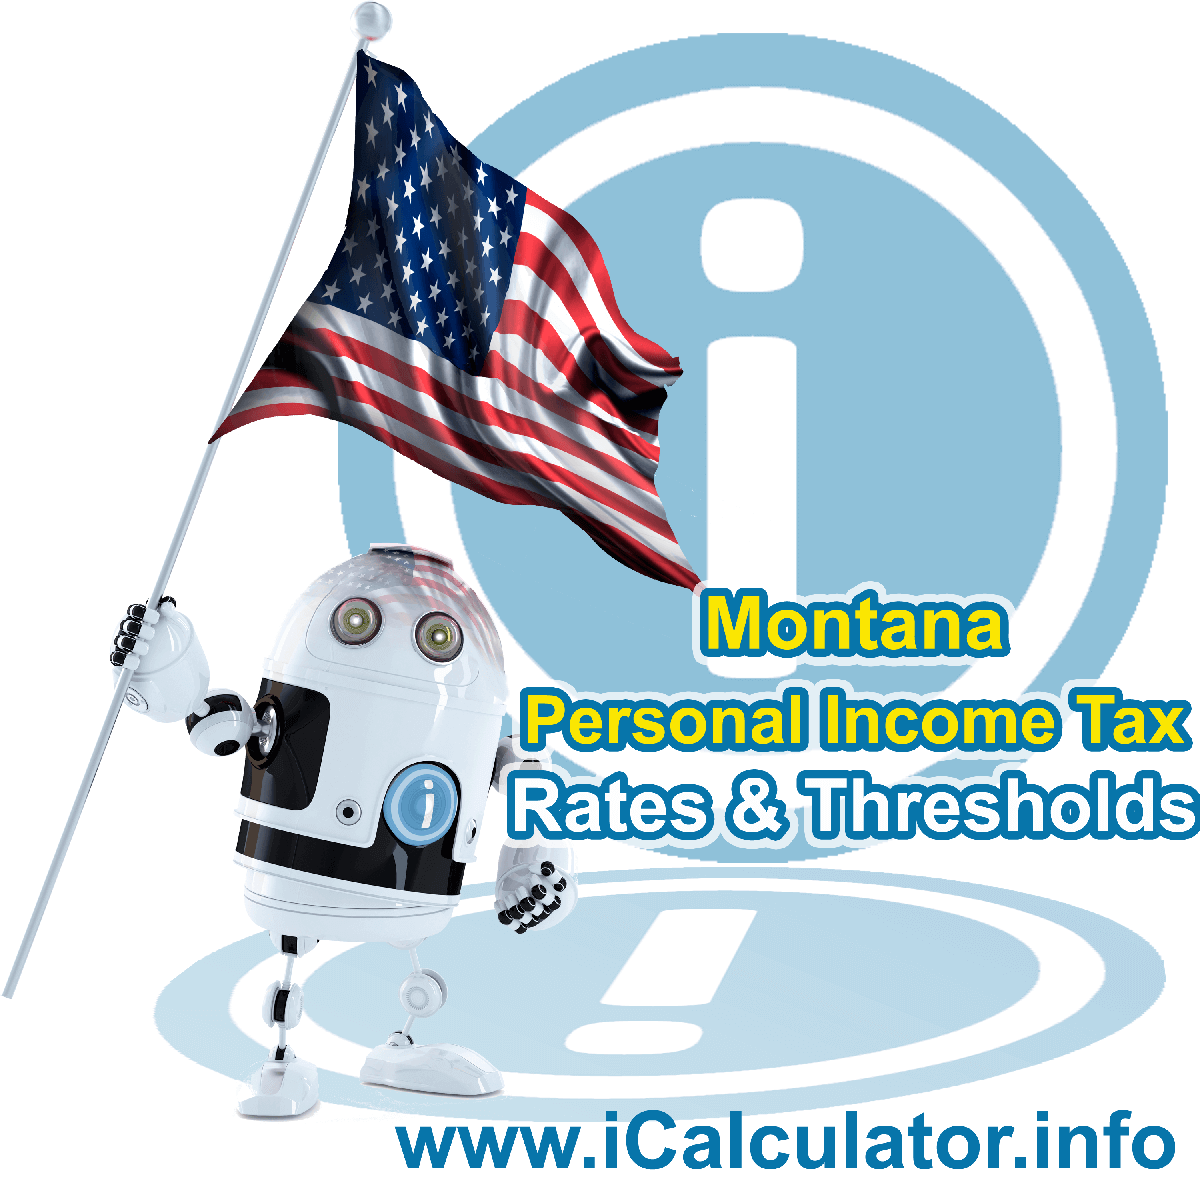 Montana State Tax Tables 2020. This image displays details of the Montana State Tax Tables for the 2020 tax return year which is provided in support of the 2020 US Tax Calculator